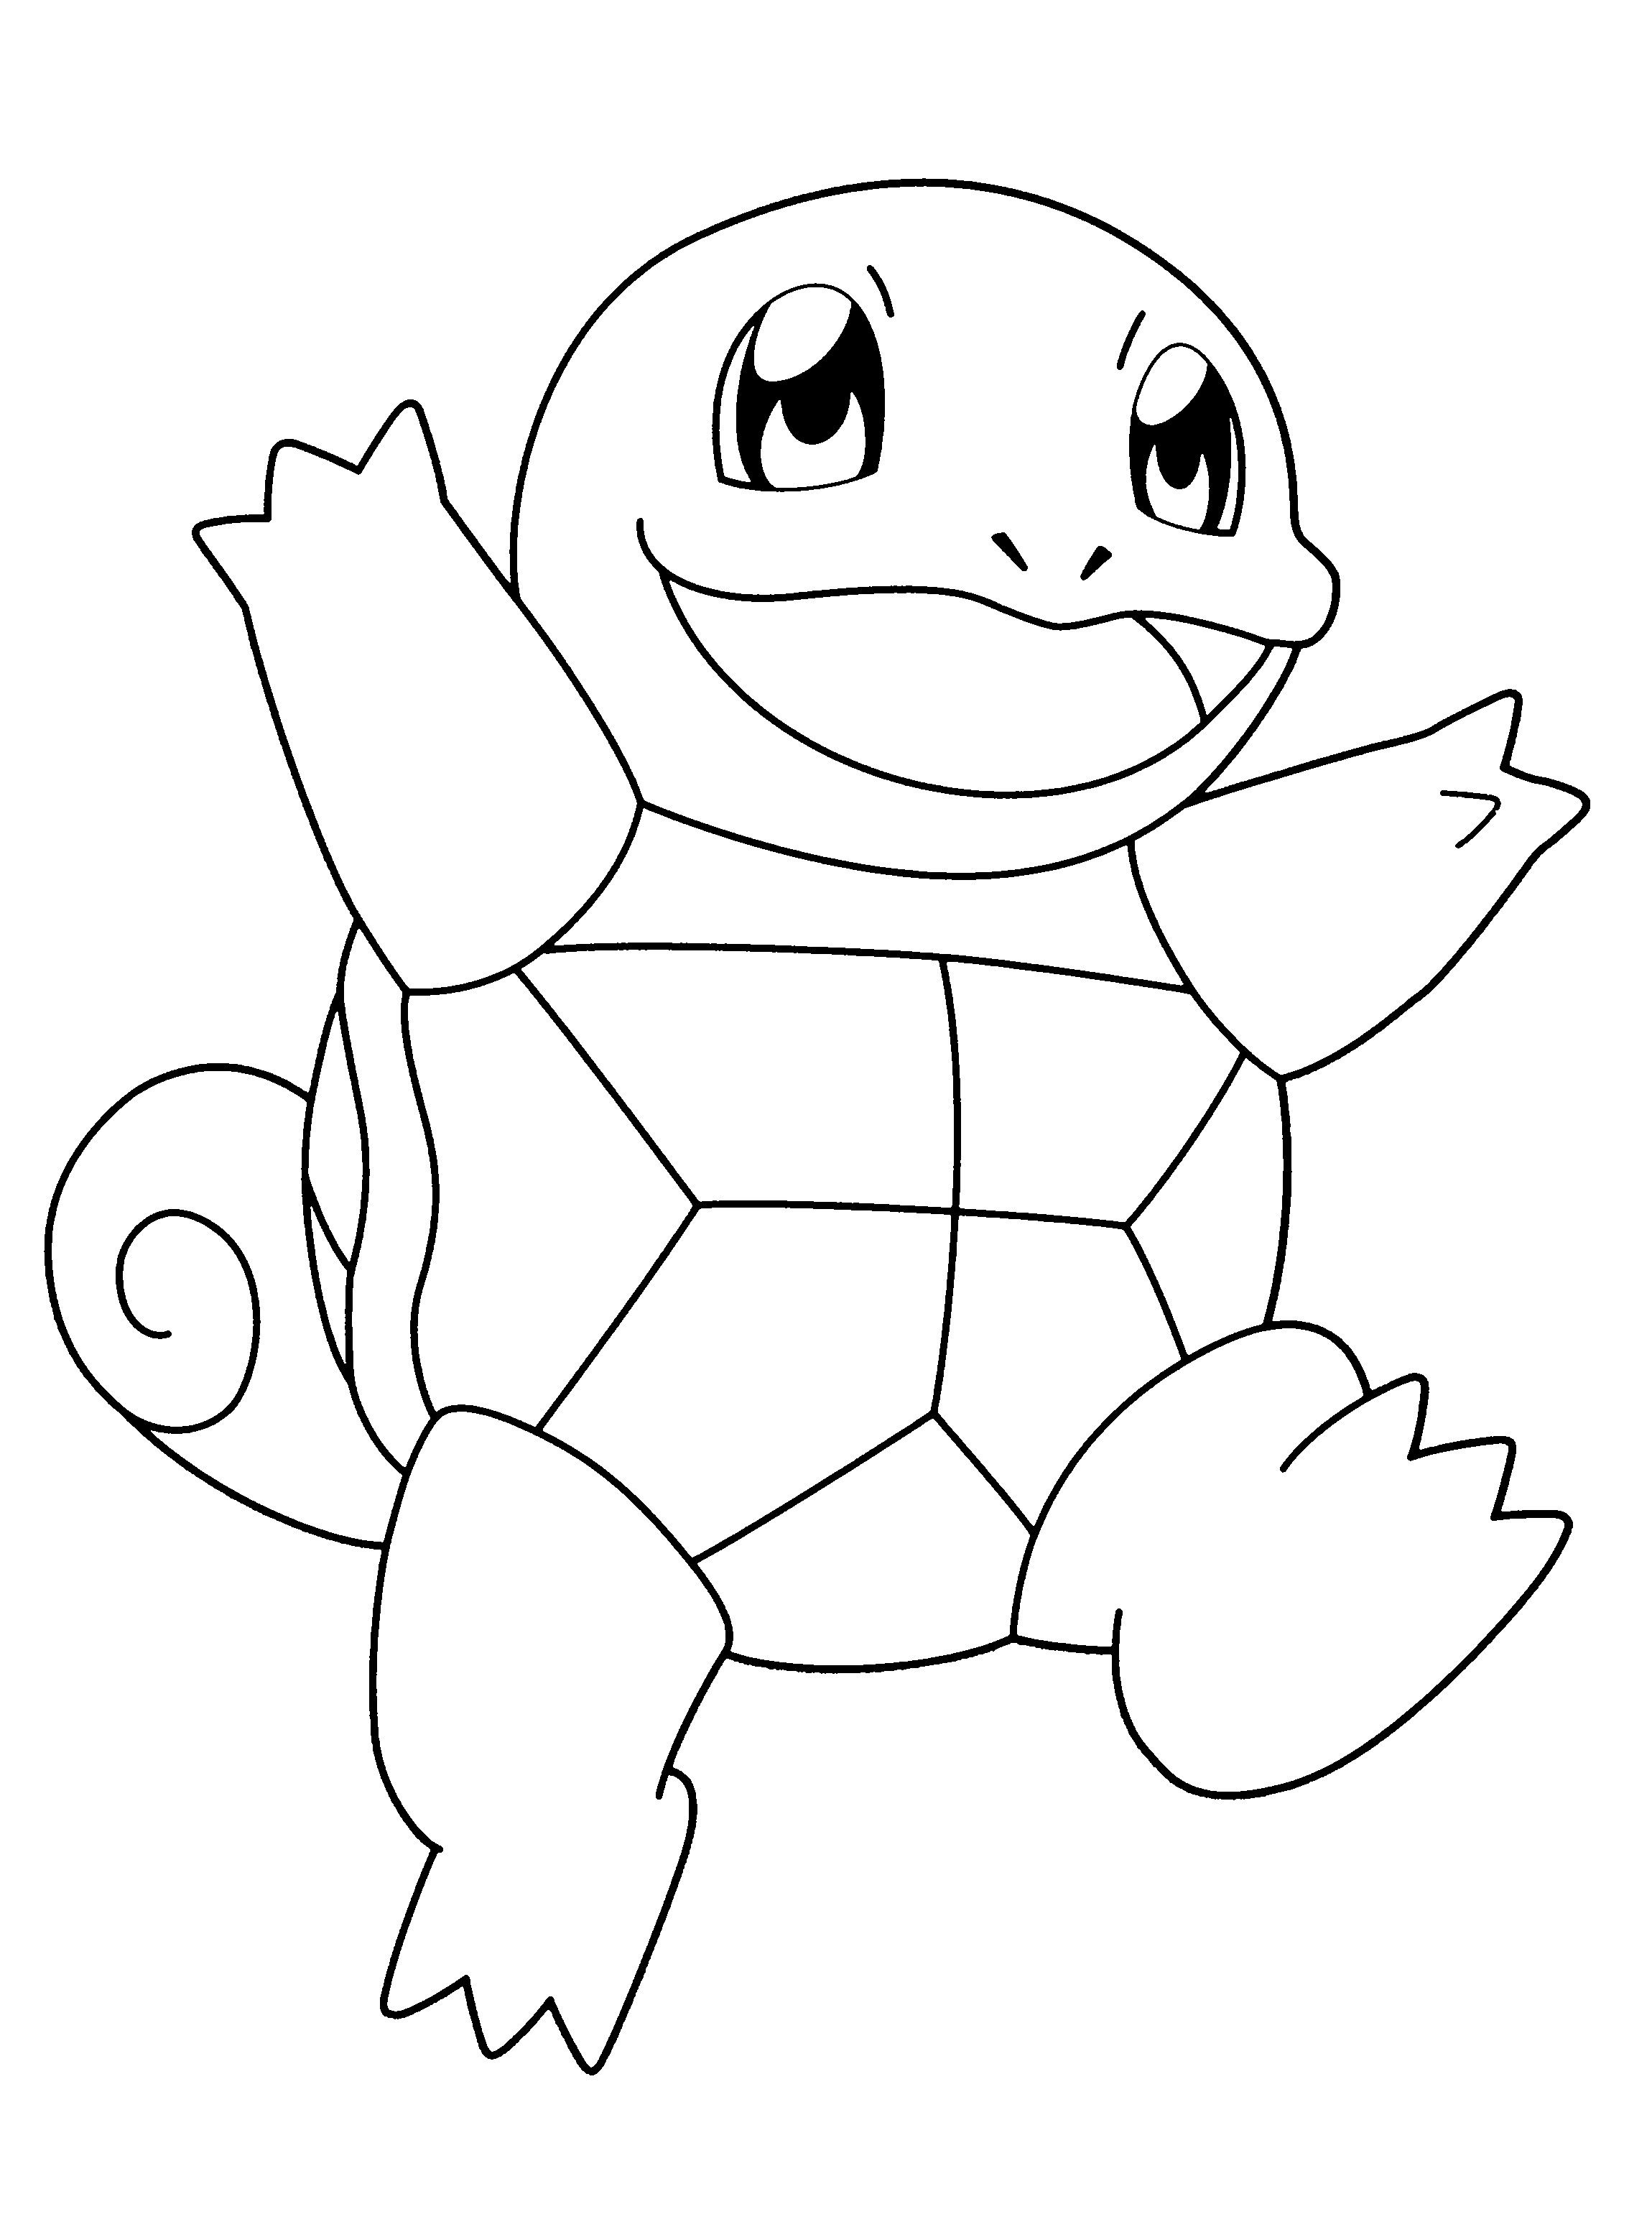 Pokemon Coloring Pages Water Type Through The Thousand Pictures On Line About Pokemon Colorin Pokemon Coloring Sheets Pokemon Coloring Pages Pokemon Coloring